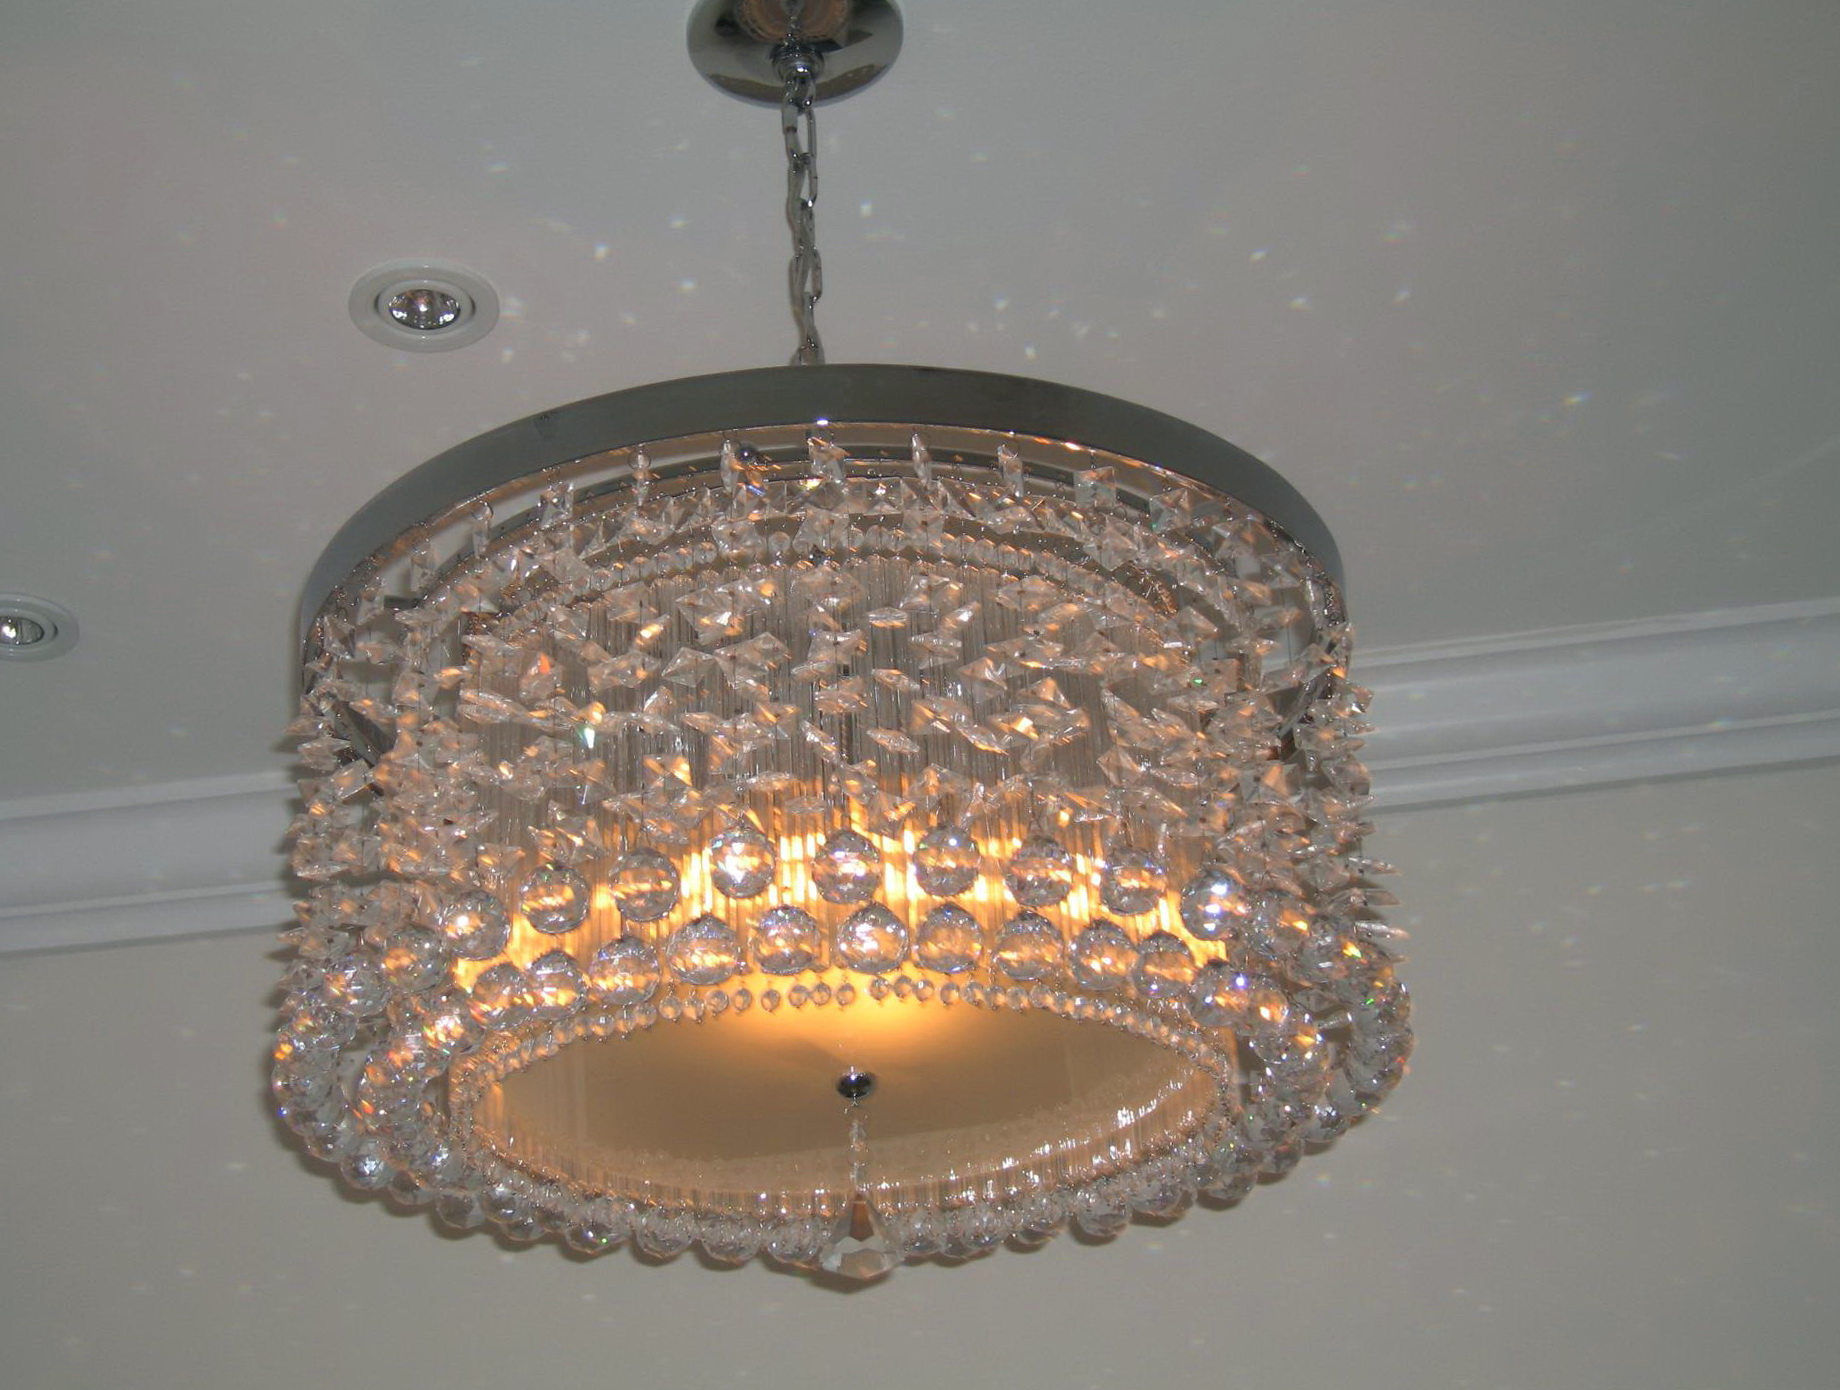 Small bathroom chandelier crystal home design ideas - Small bathroom chandelier crystal ...